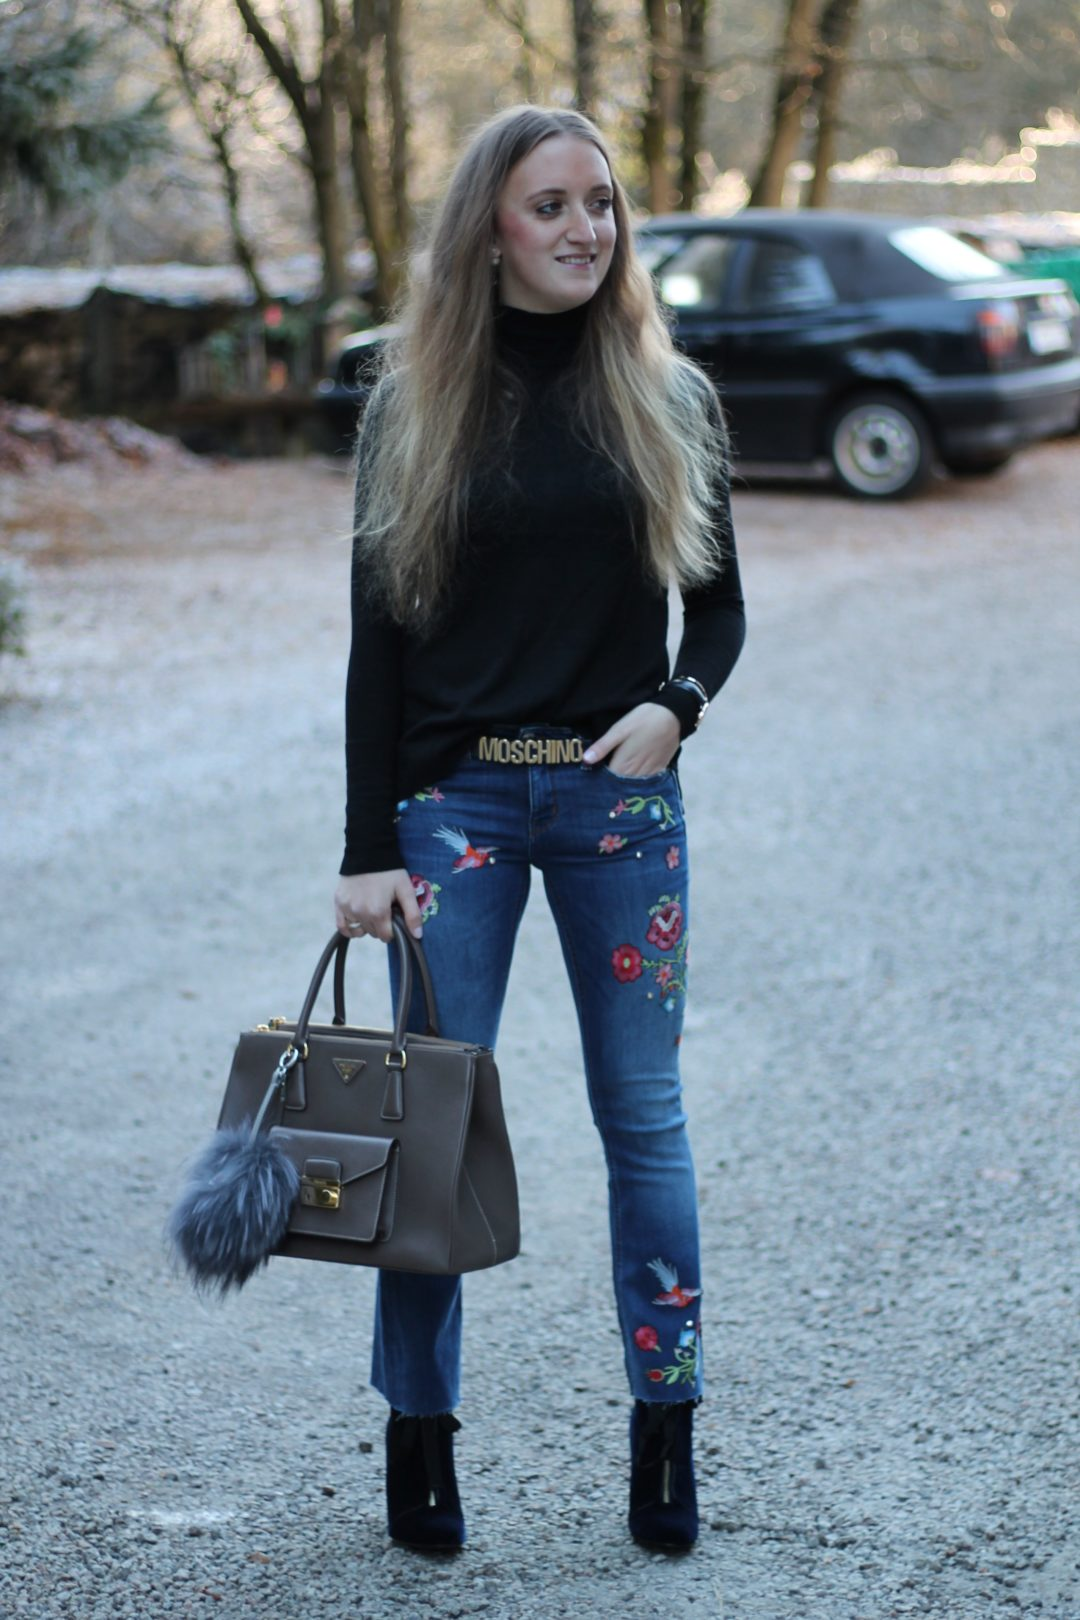 """Embroidered jeans - now I am also infected with the """"patches fever"""" and the little colorful pieces just add that certain something to every outfit...@wiebkembg"""